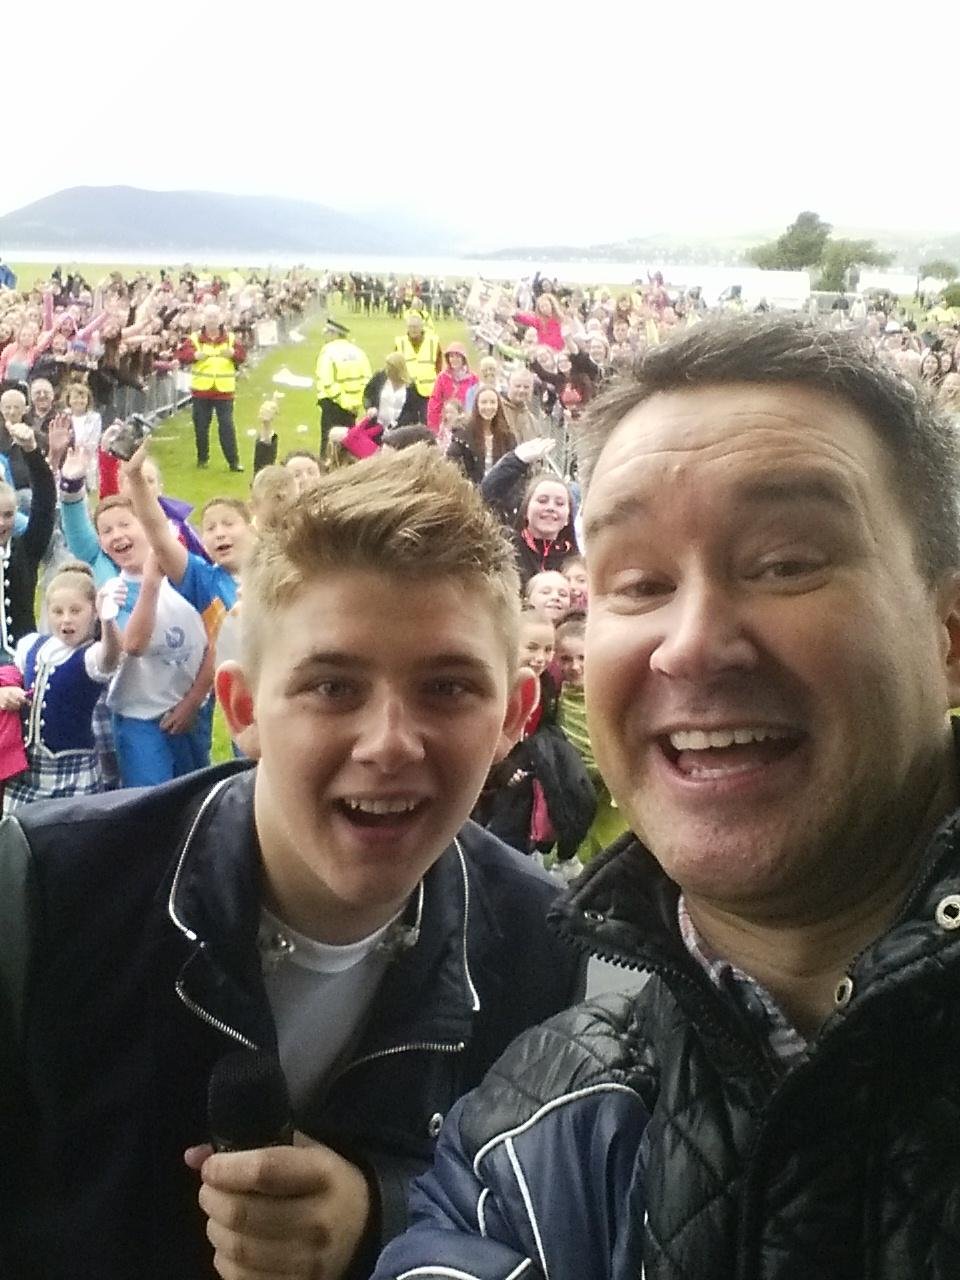 RT @thestevemckenna: Wind & rain yesterday didn't stop @nickymcdonald1 giving a great performance or the crowd going nuts in Inverclyde htt…